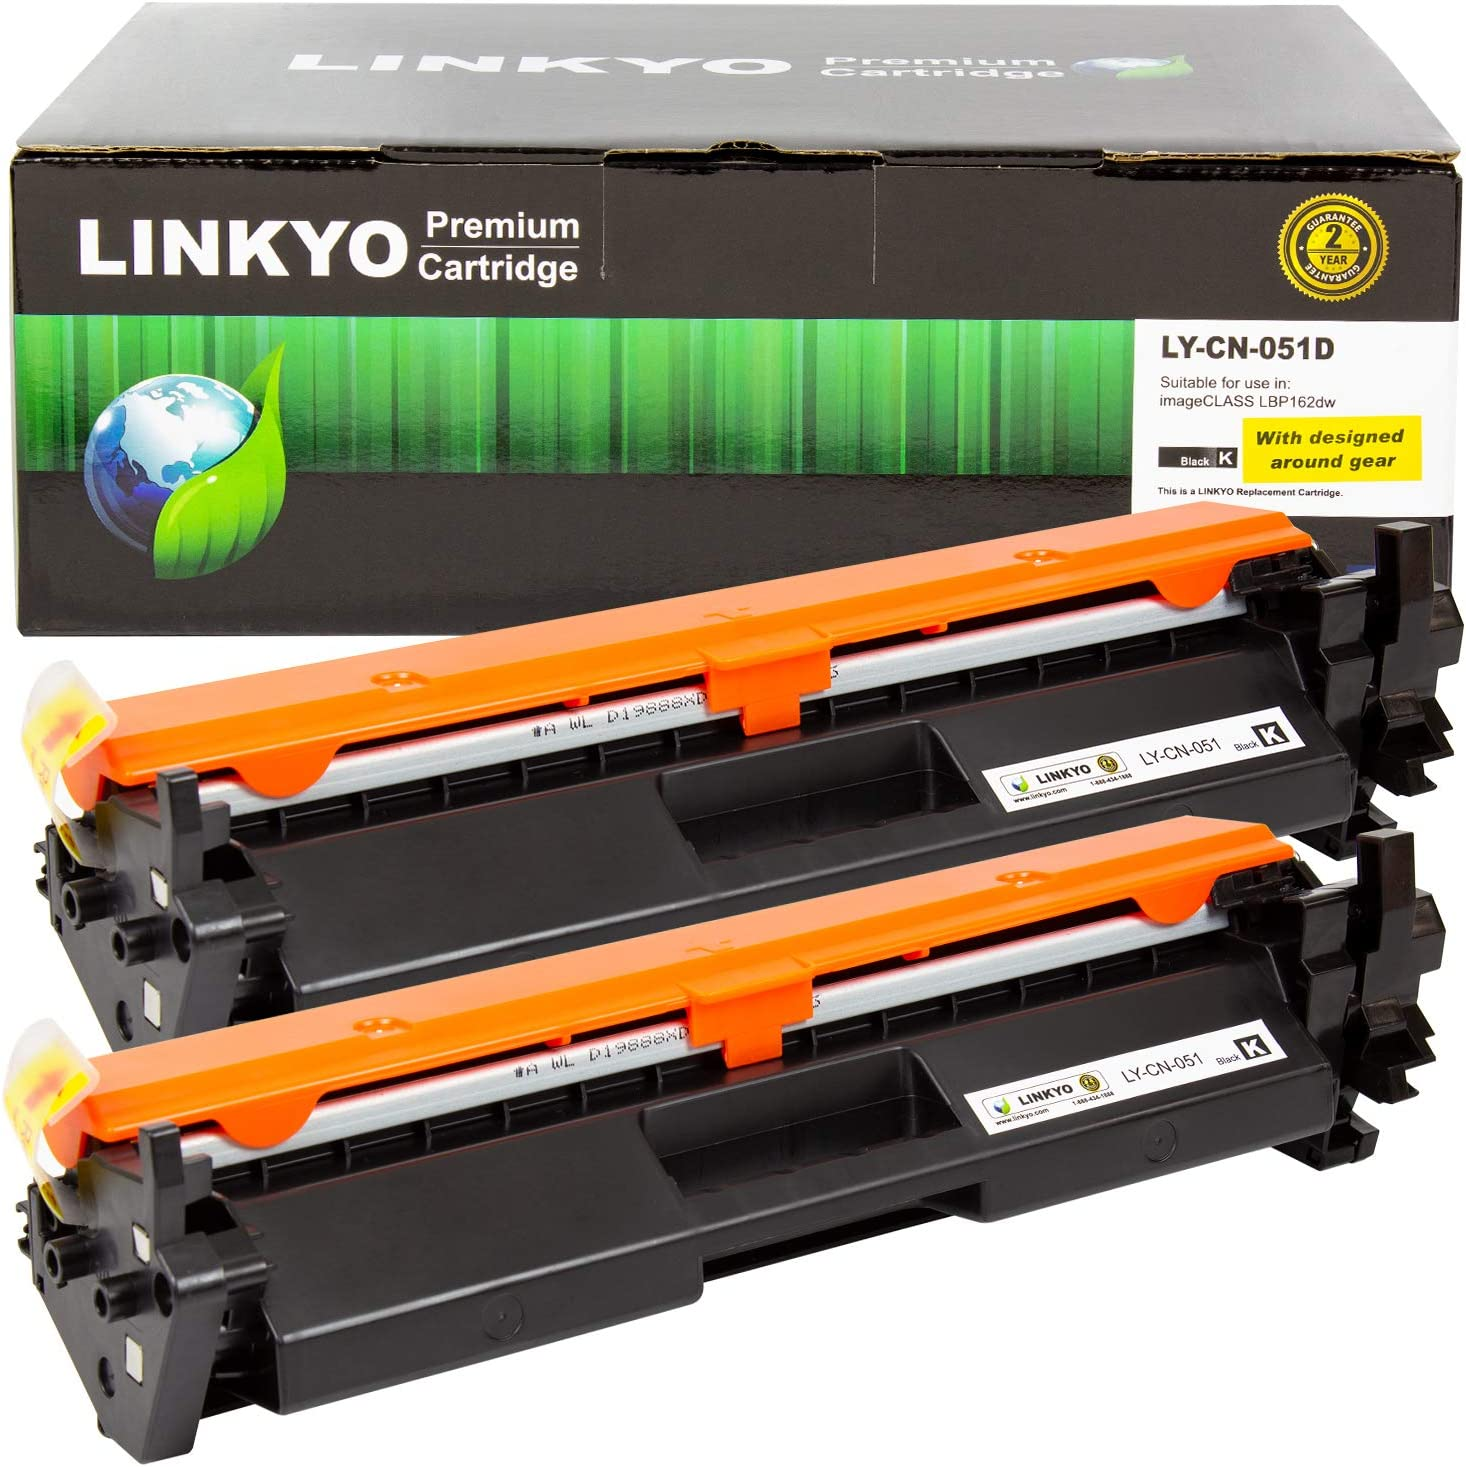 LINKYO Compatible Toner Cartridge Replacement for Canon 051 (Black, 2-Pack)